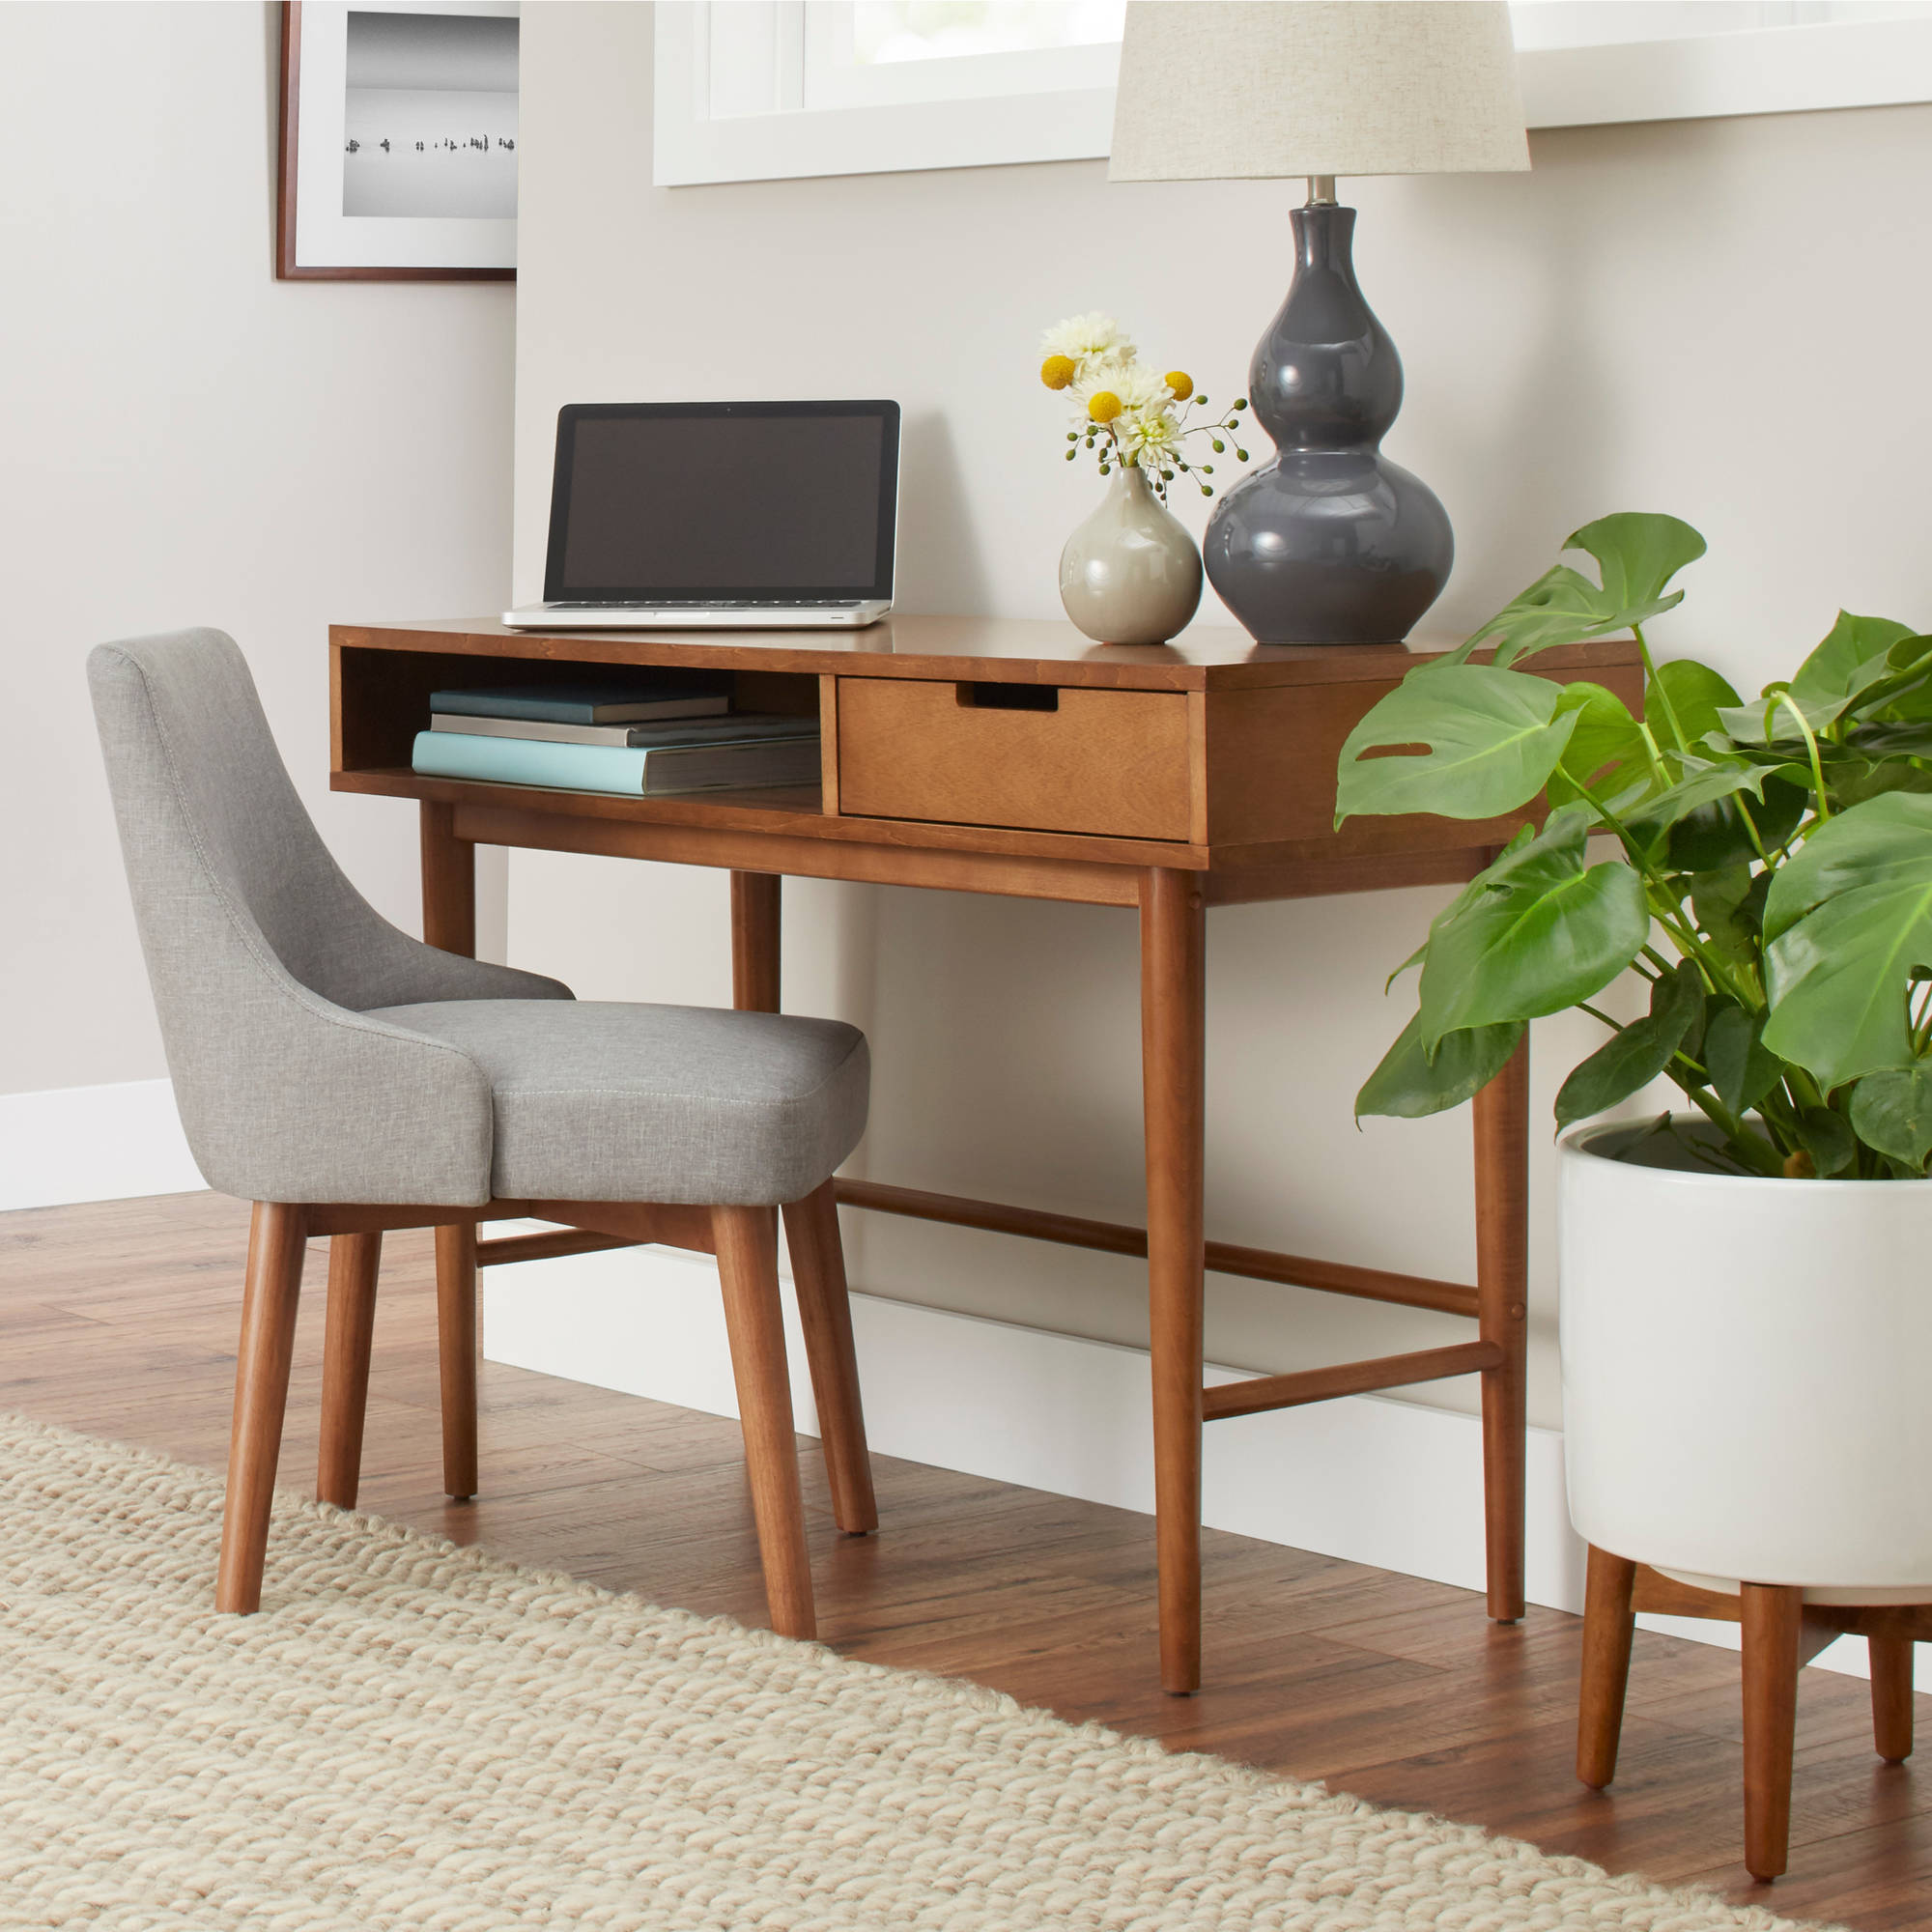 Better Homes And Gardens Flynn Mid Century Modern Desk, Pecan